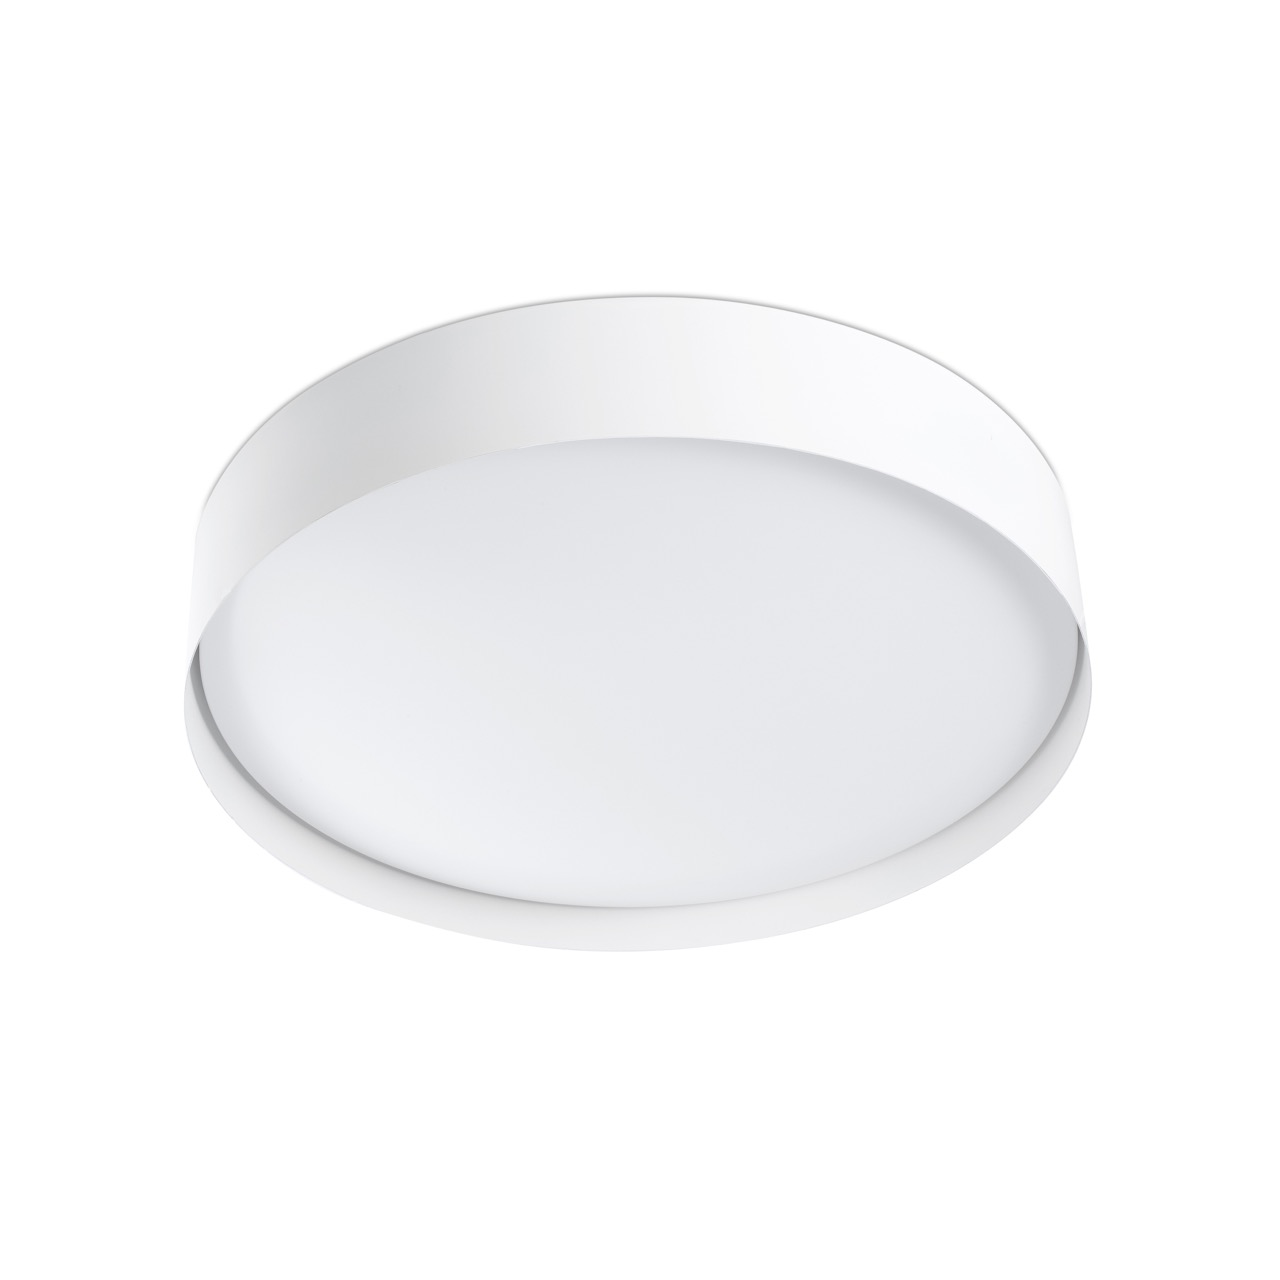 Plaf n de led para techos de ba os y aseos vuk de faro for Plafon led cocina rectangular